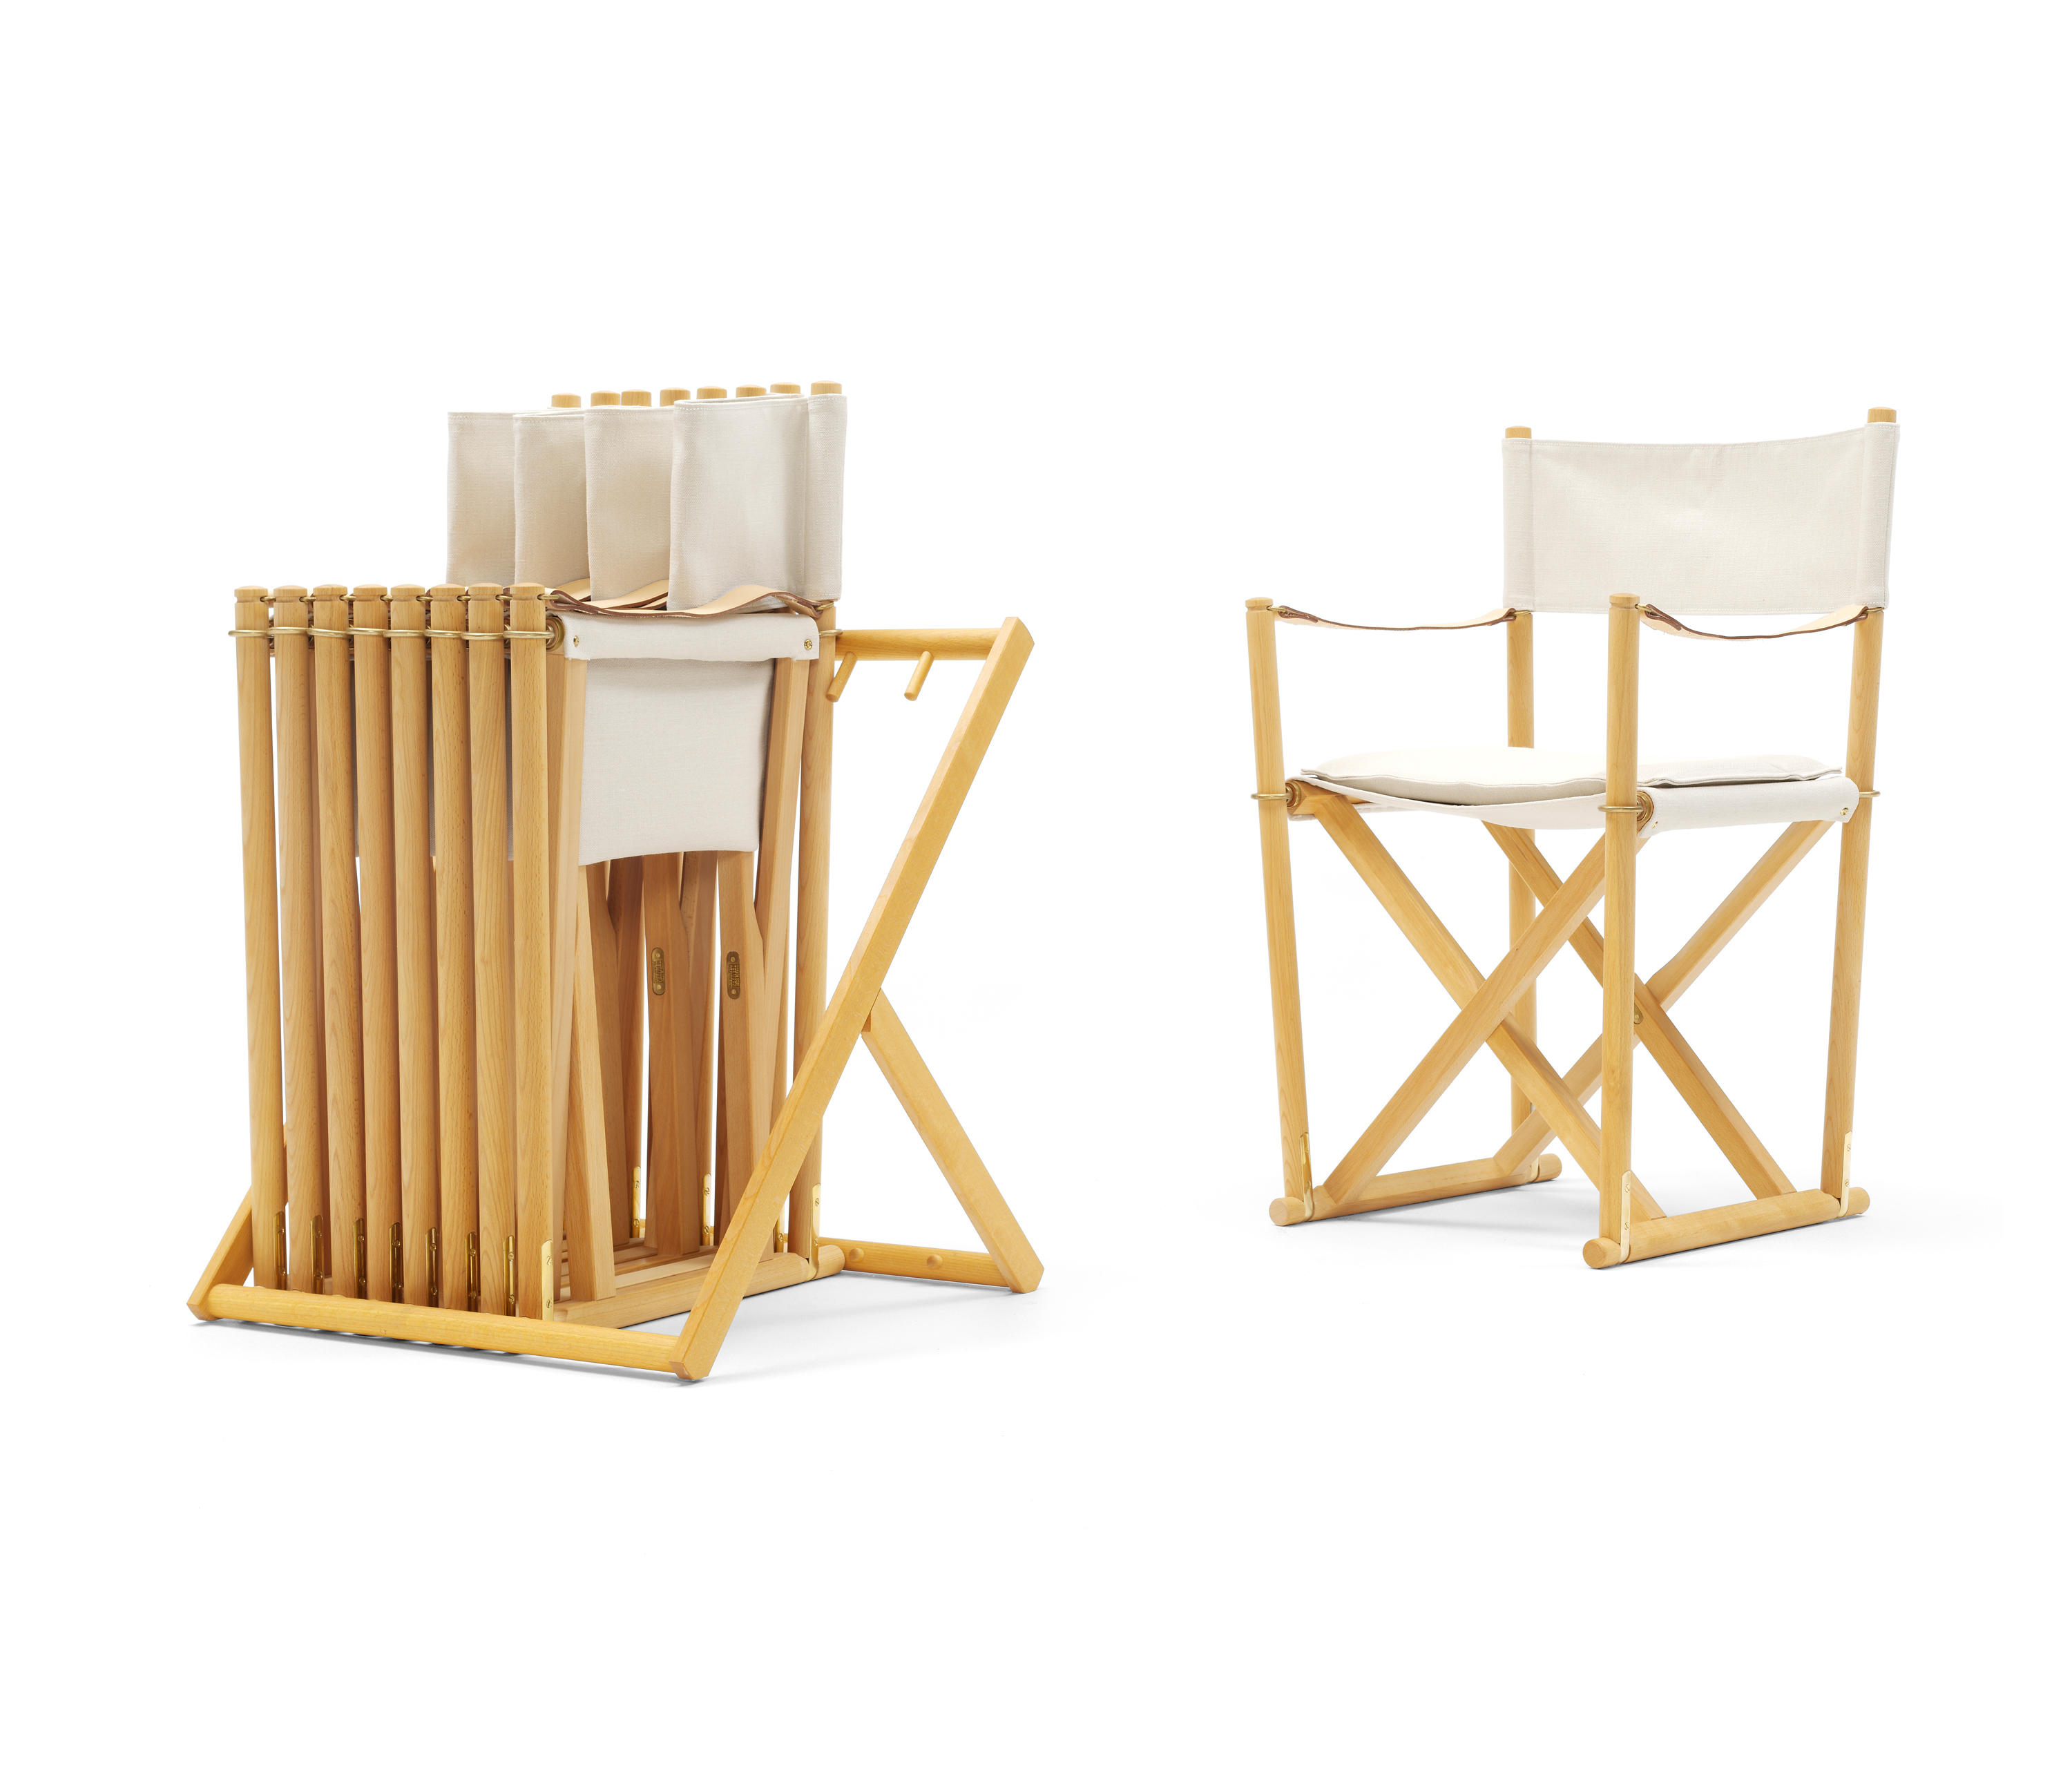 FOLDING CHAIR Garden chairs from Carl Hansen & S¸n